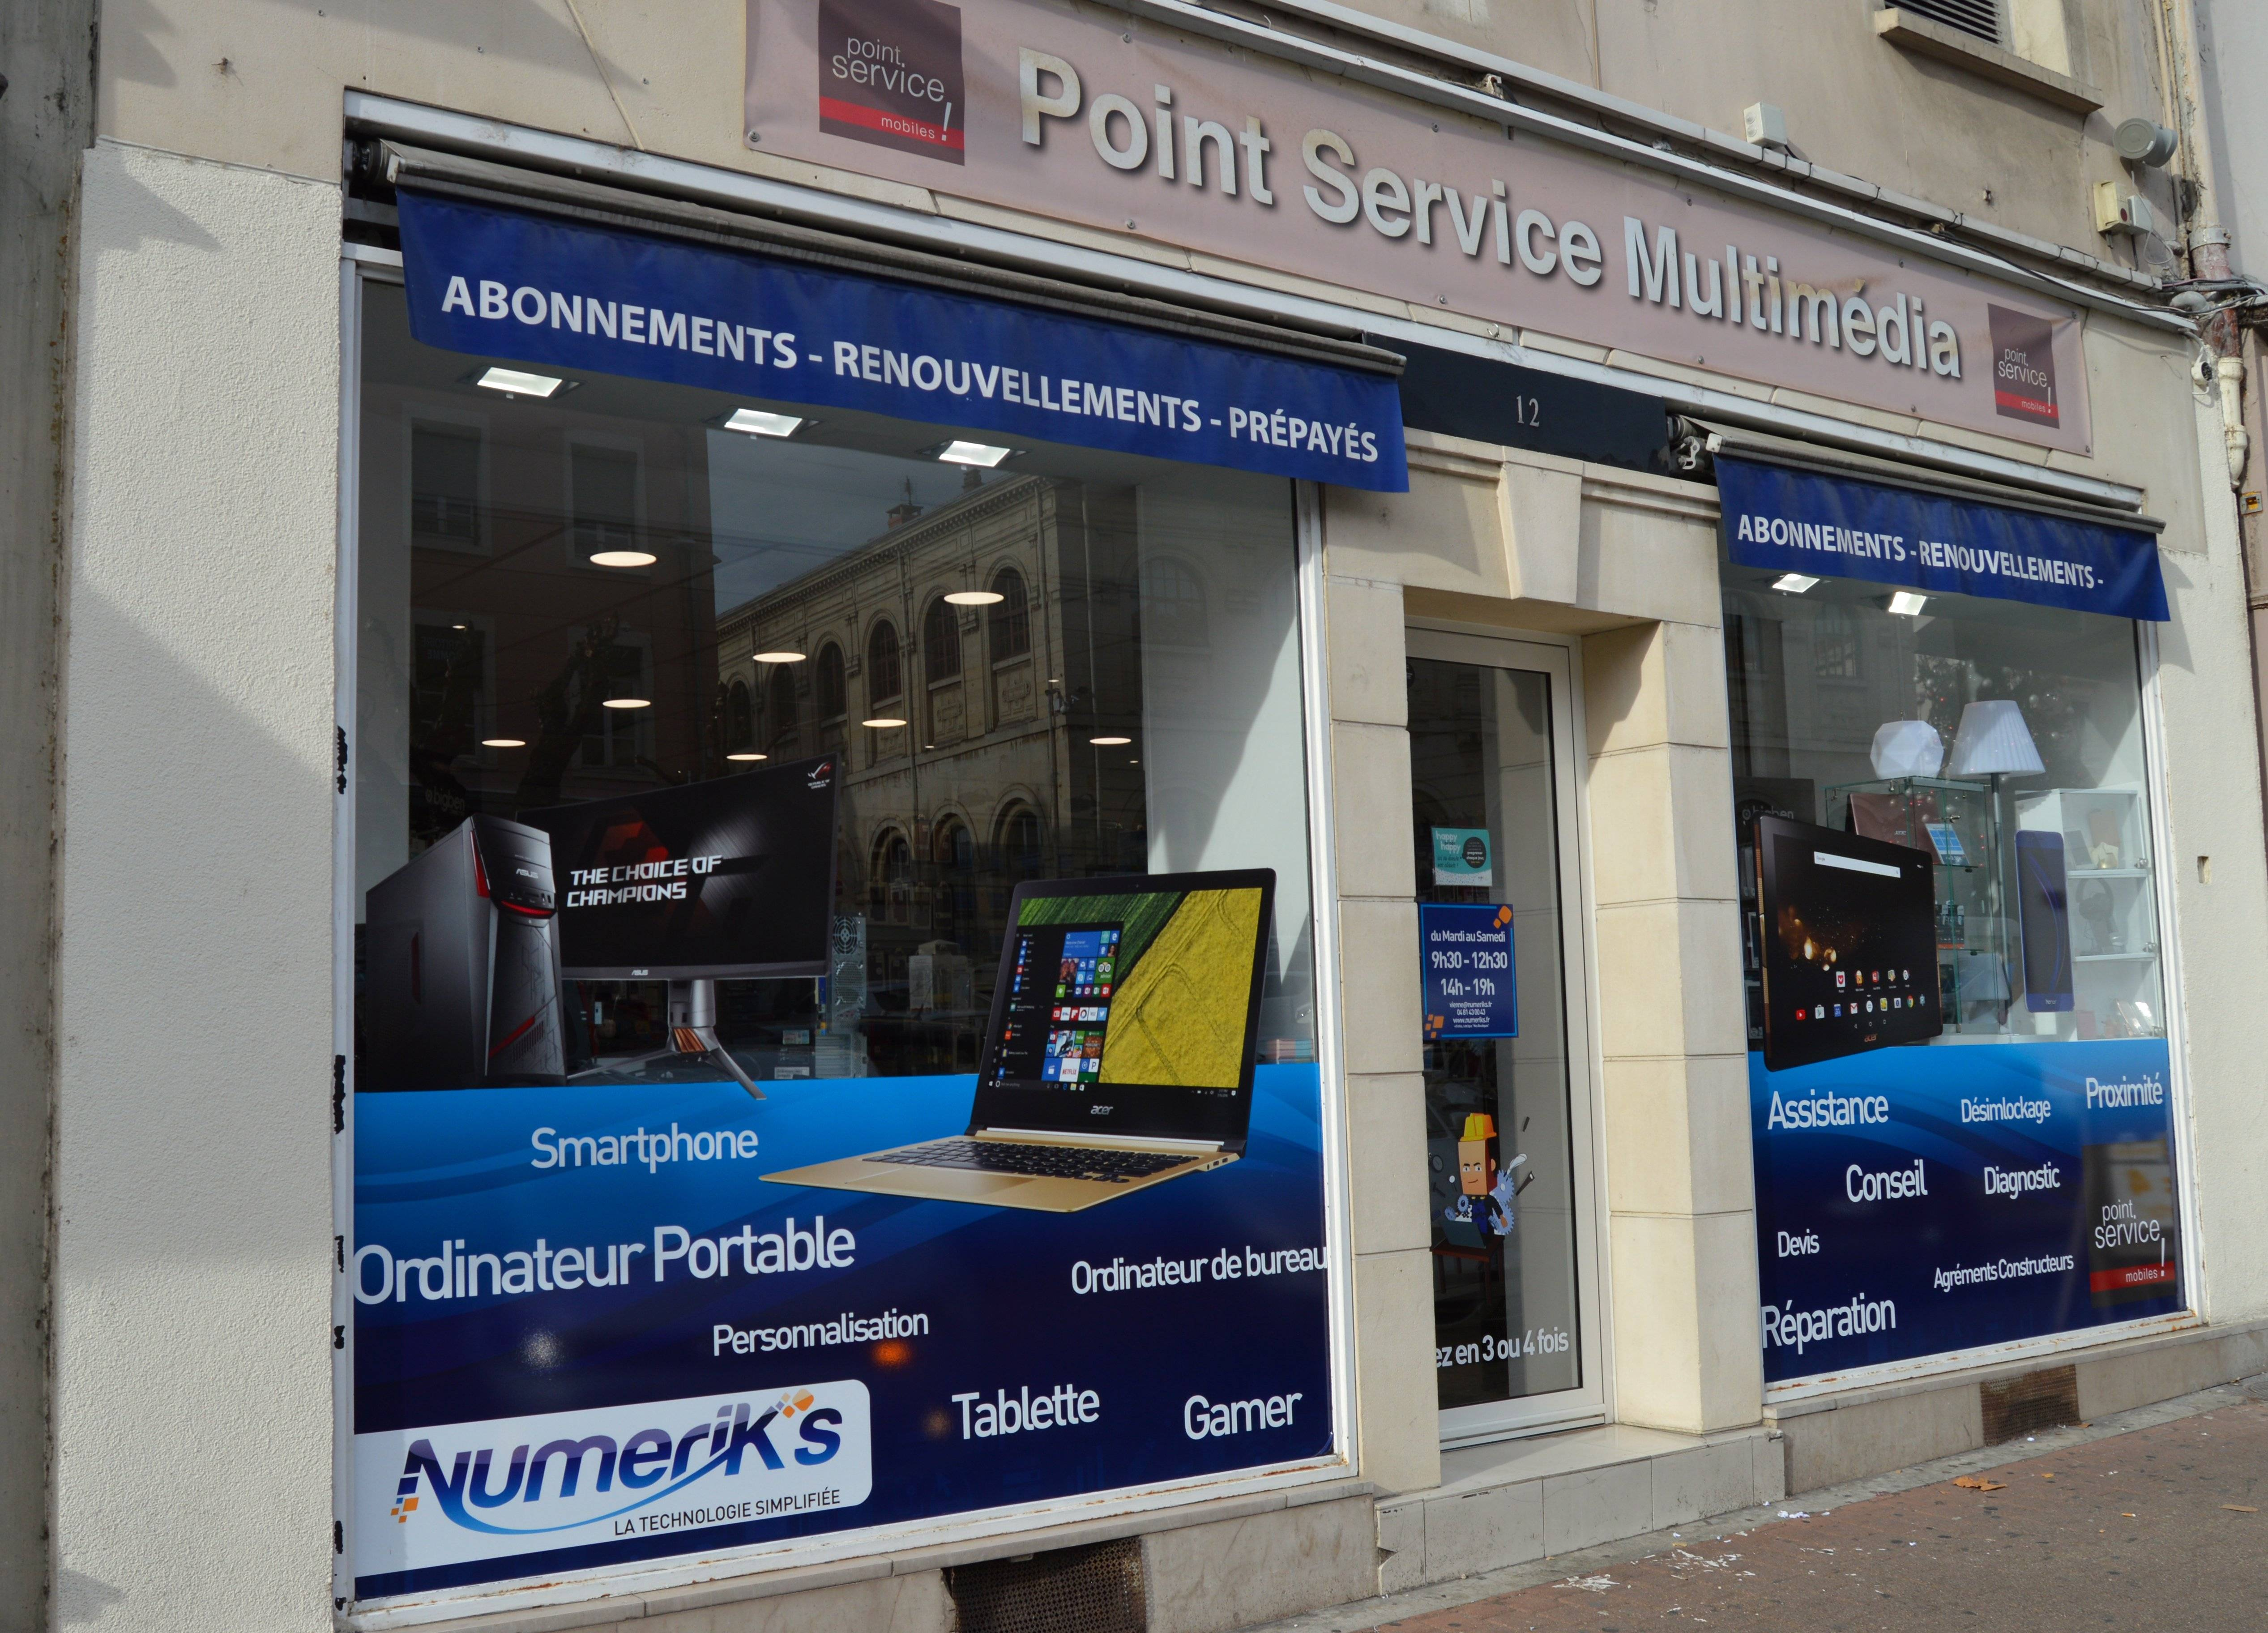 NUMERIK'S VIENNE - PSM (POINT SERVICE MOBILE)